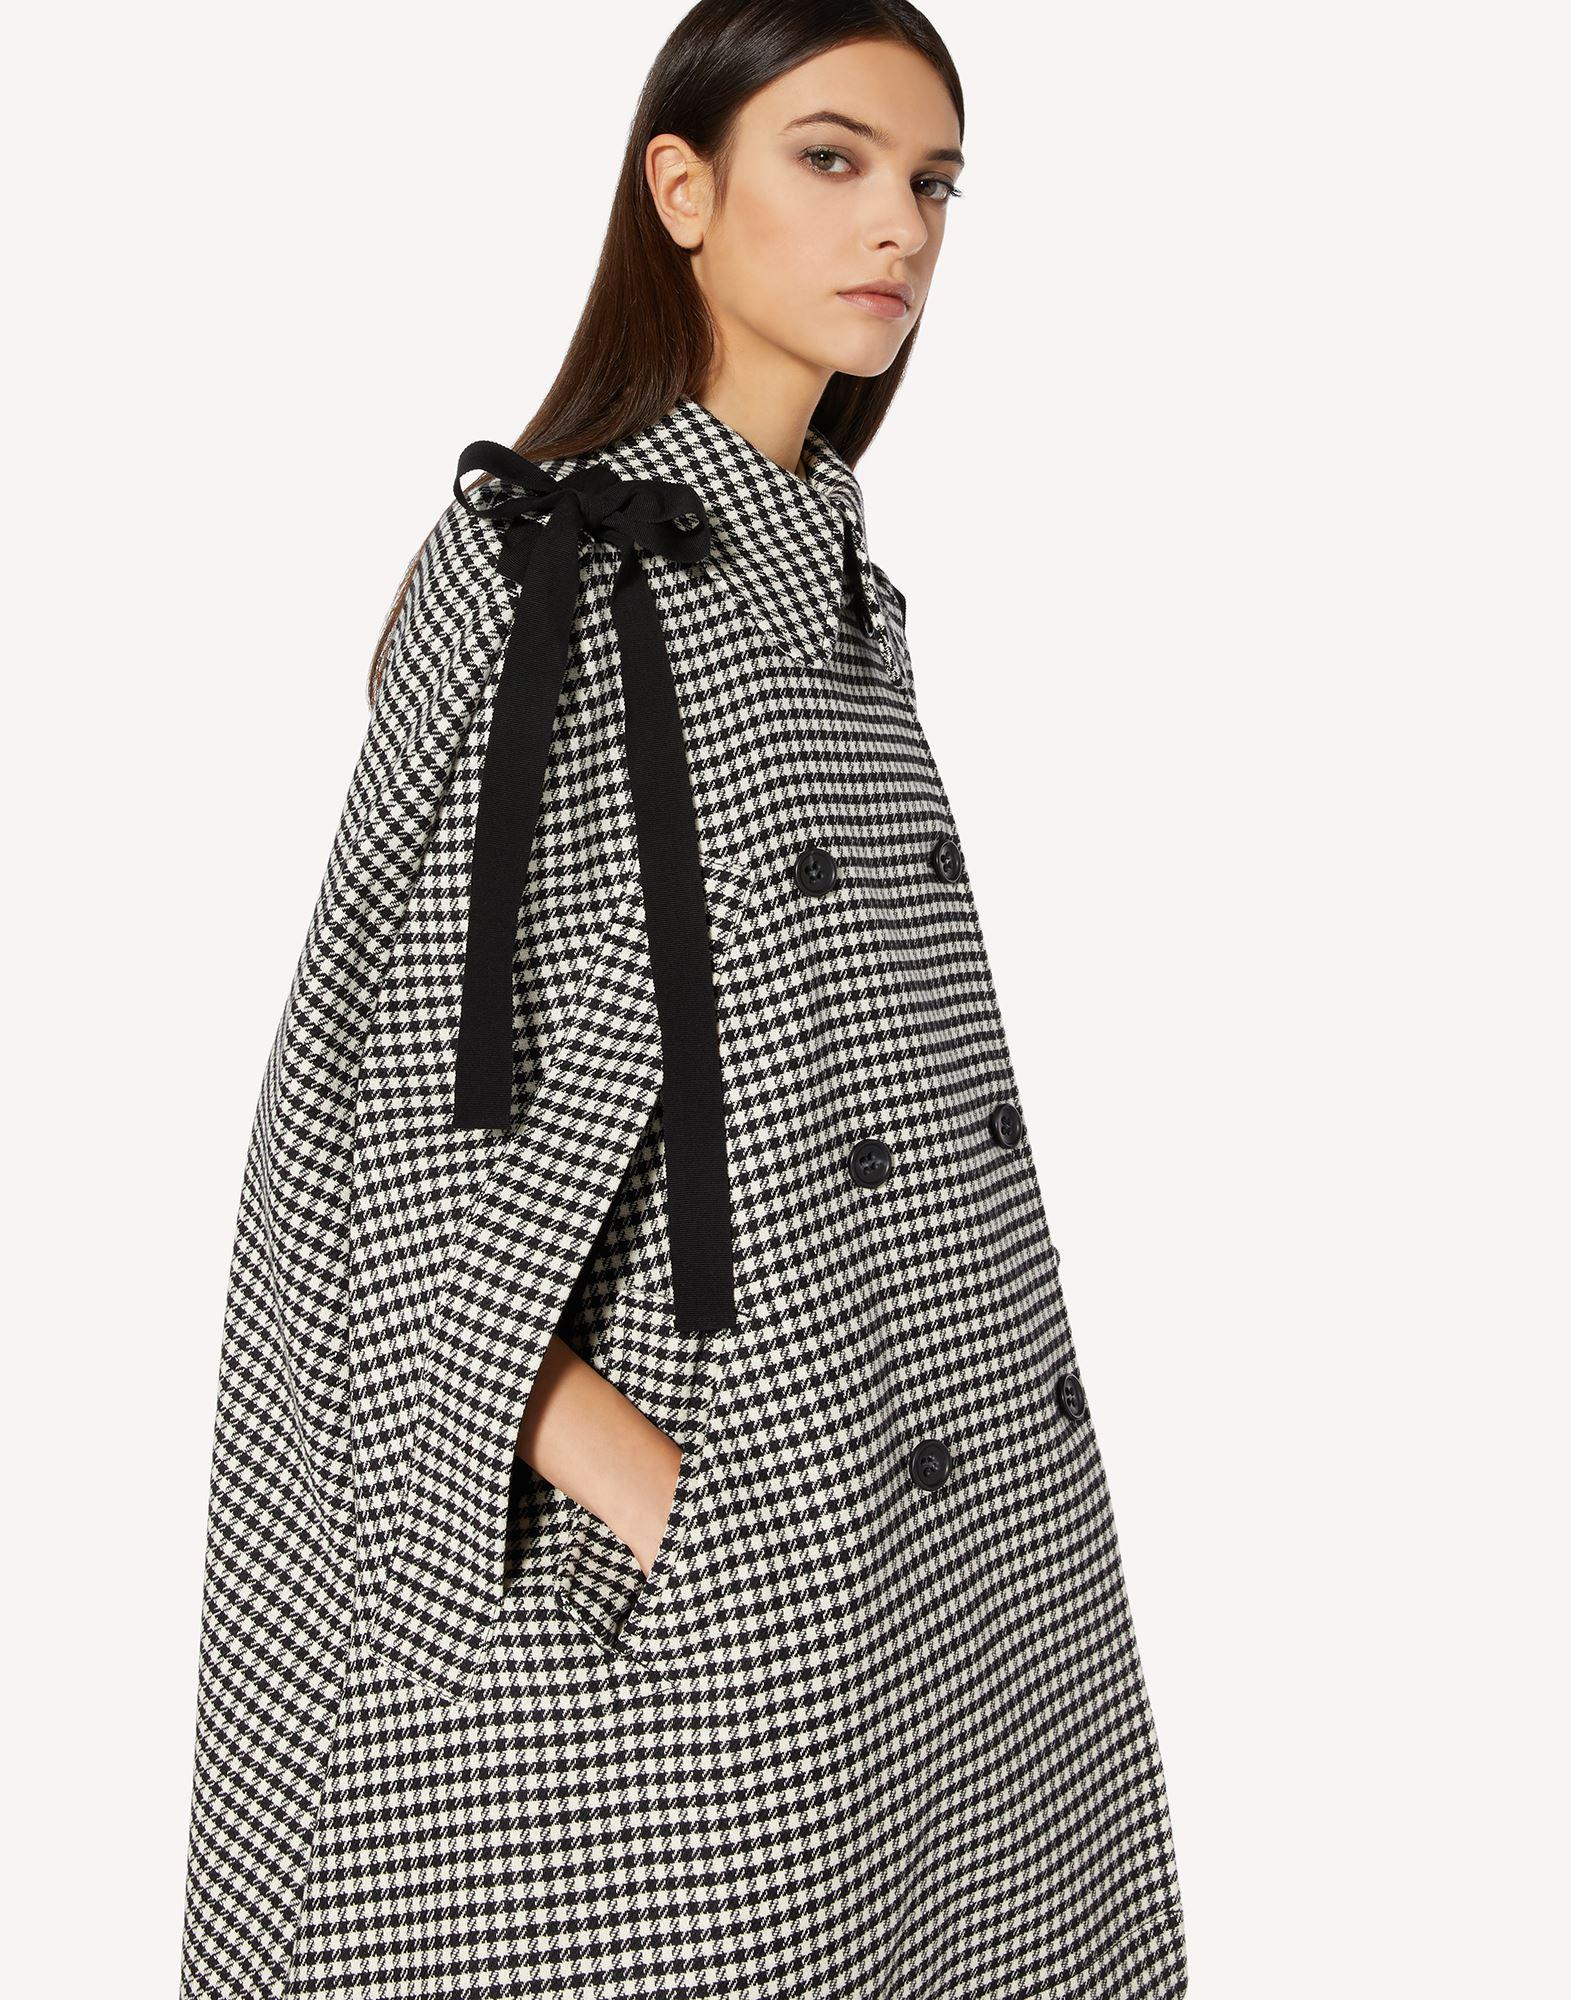 VICHY MOTIF CAPE WITH BOW DETAIL 3